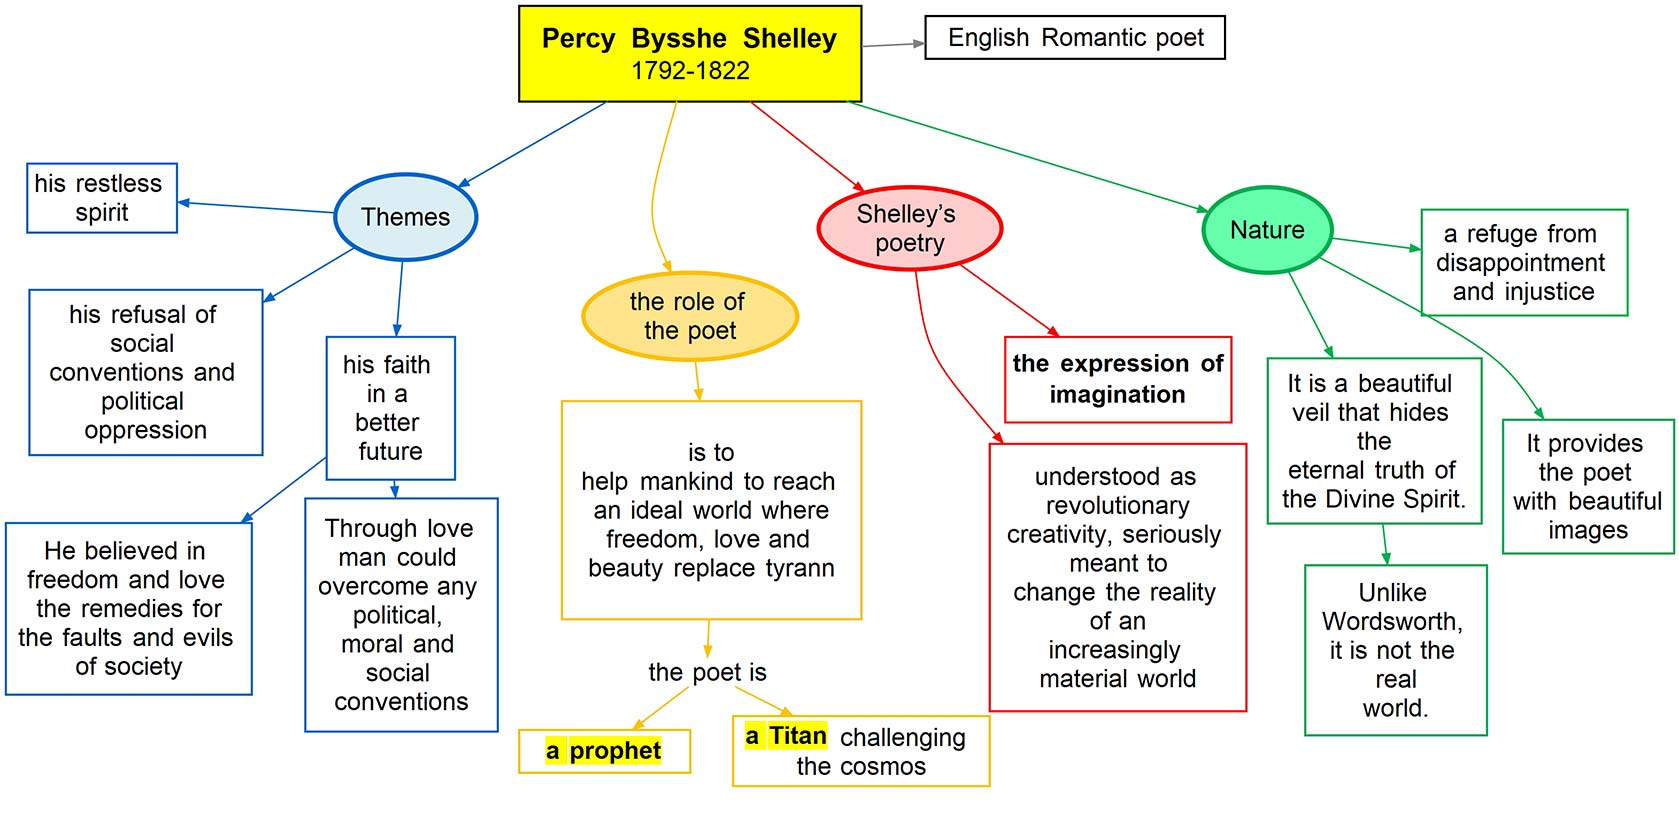 Percy Bysshe Shelley - poetry